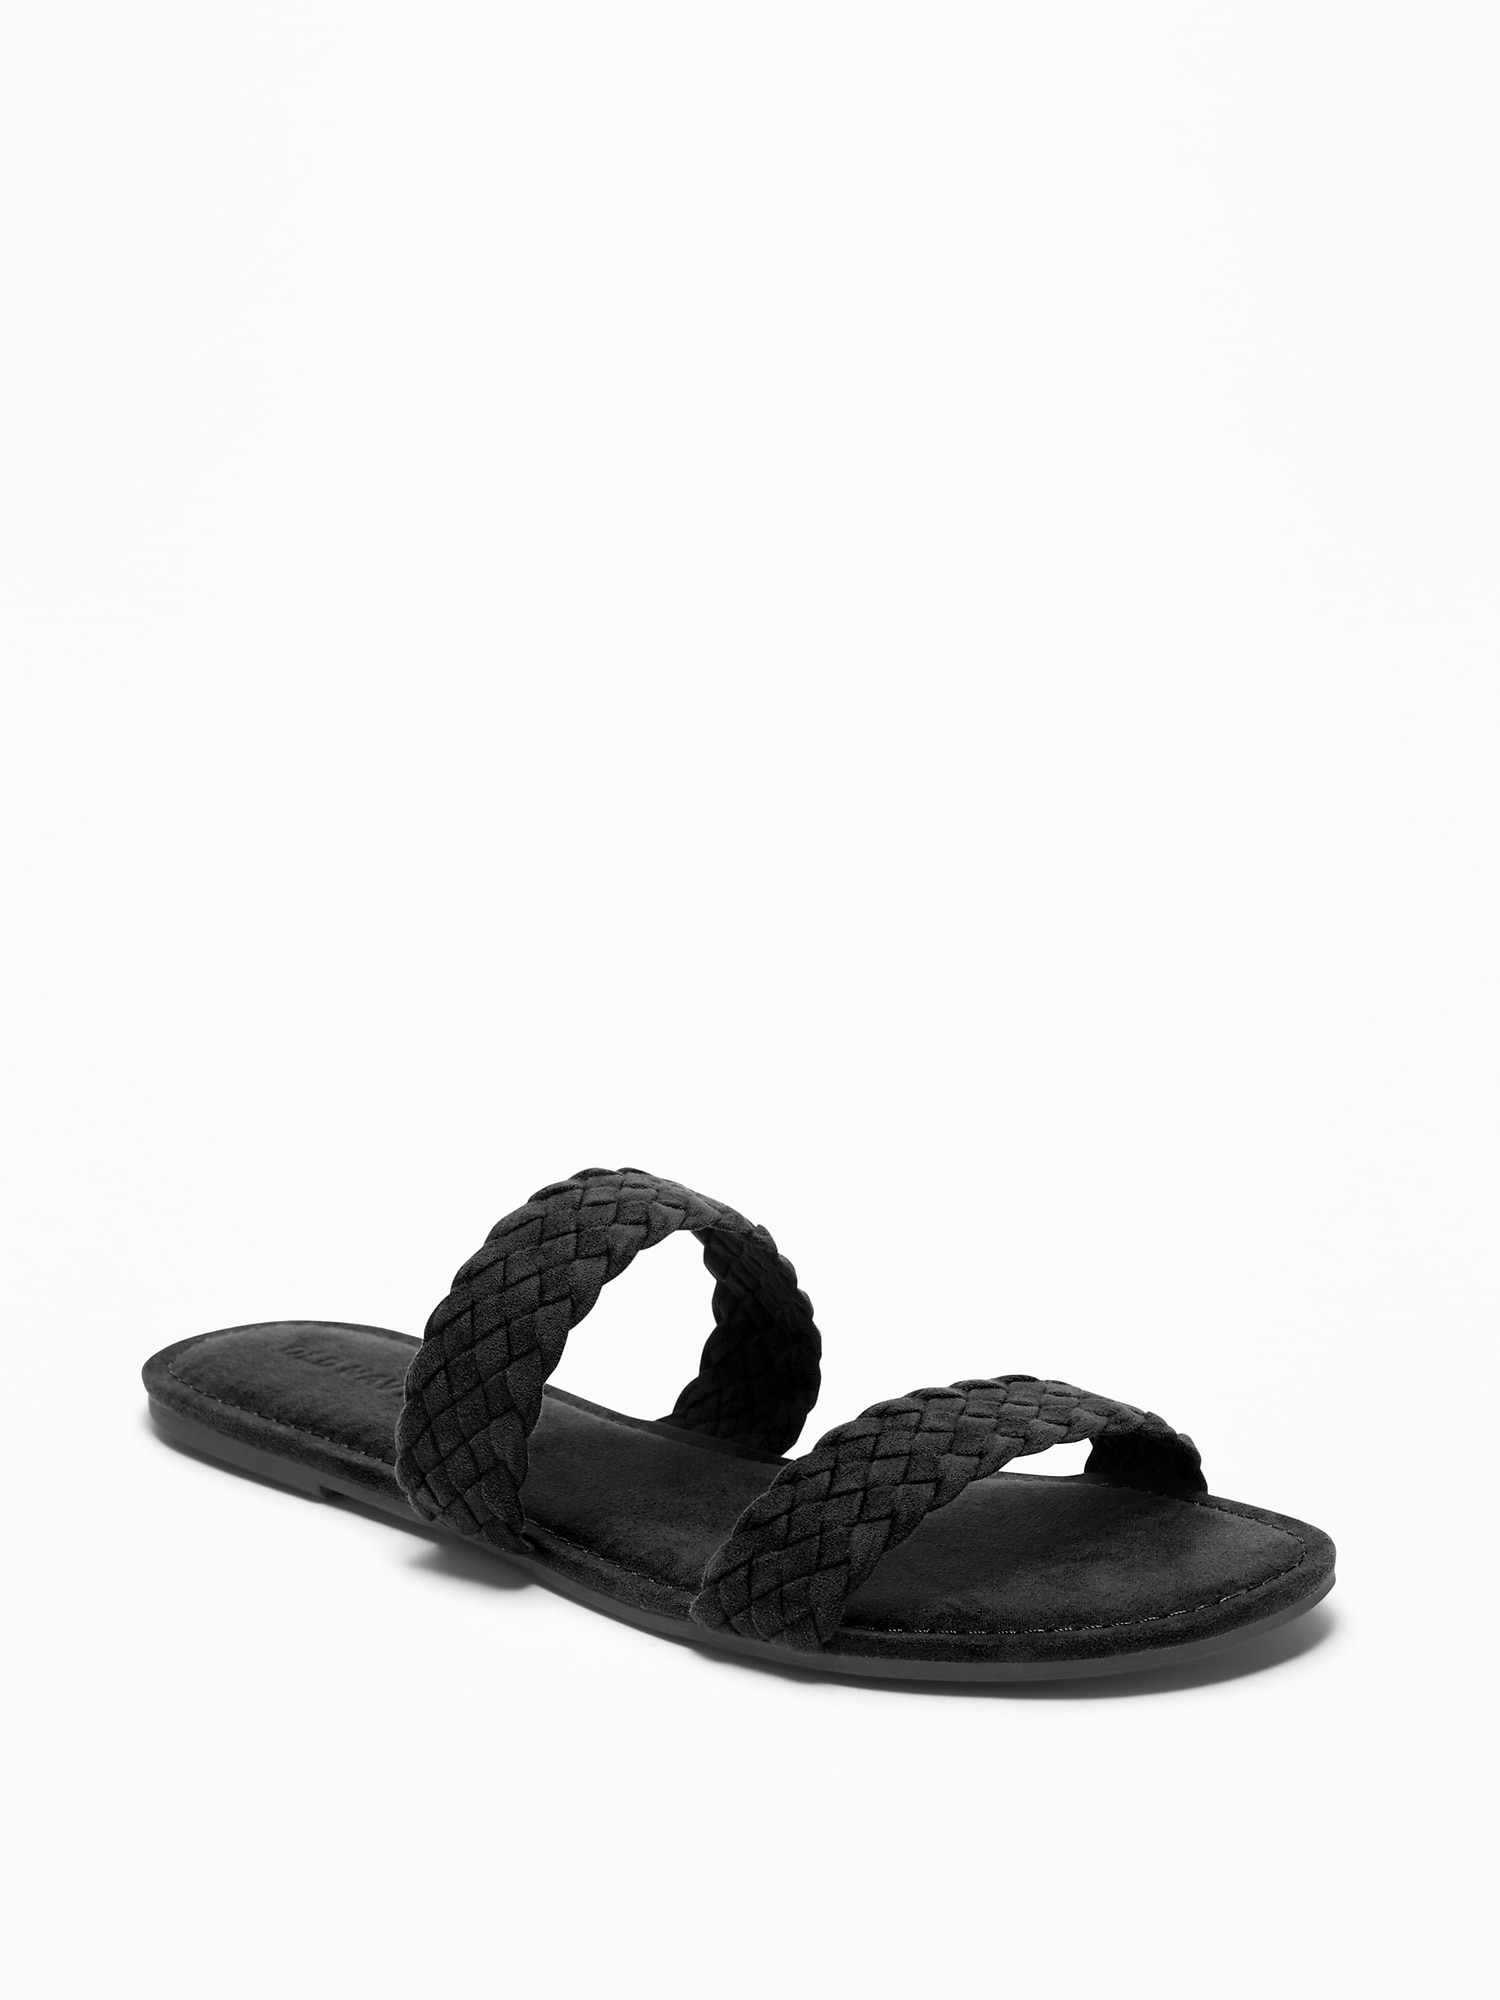 8a24e9824 Braided Faux-Suede Slide Sandals for Women